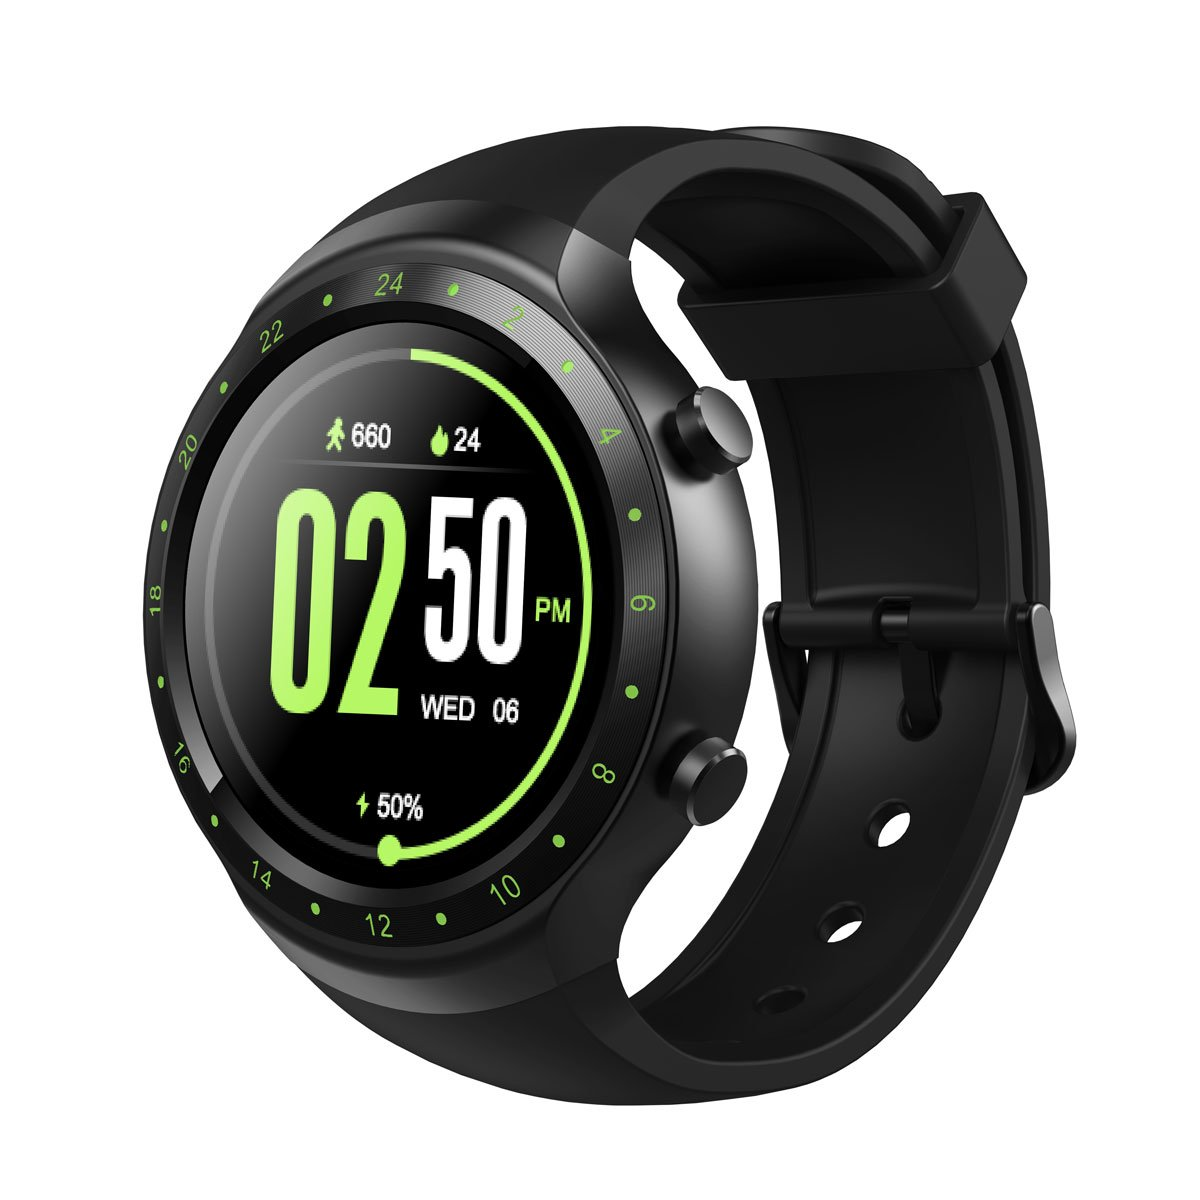 Diggro DI07 Smart Watch Android 5.1 MTK6580 1.1GHz Support 3G Wifi Nano SIM GPS Calling Reminder Heart Rate Monitor Sport Pedometer for Andriod IOS (Fluorescent Green)